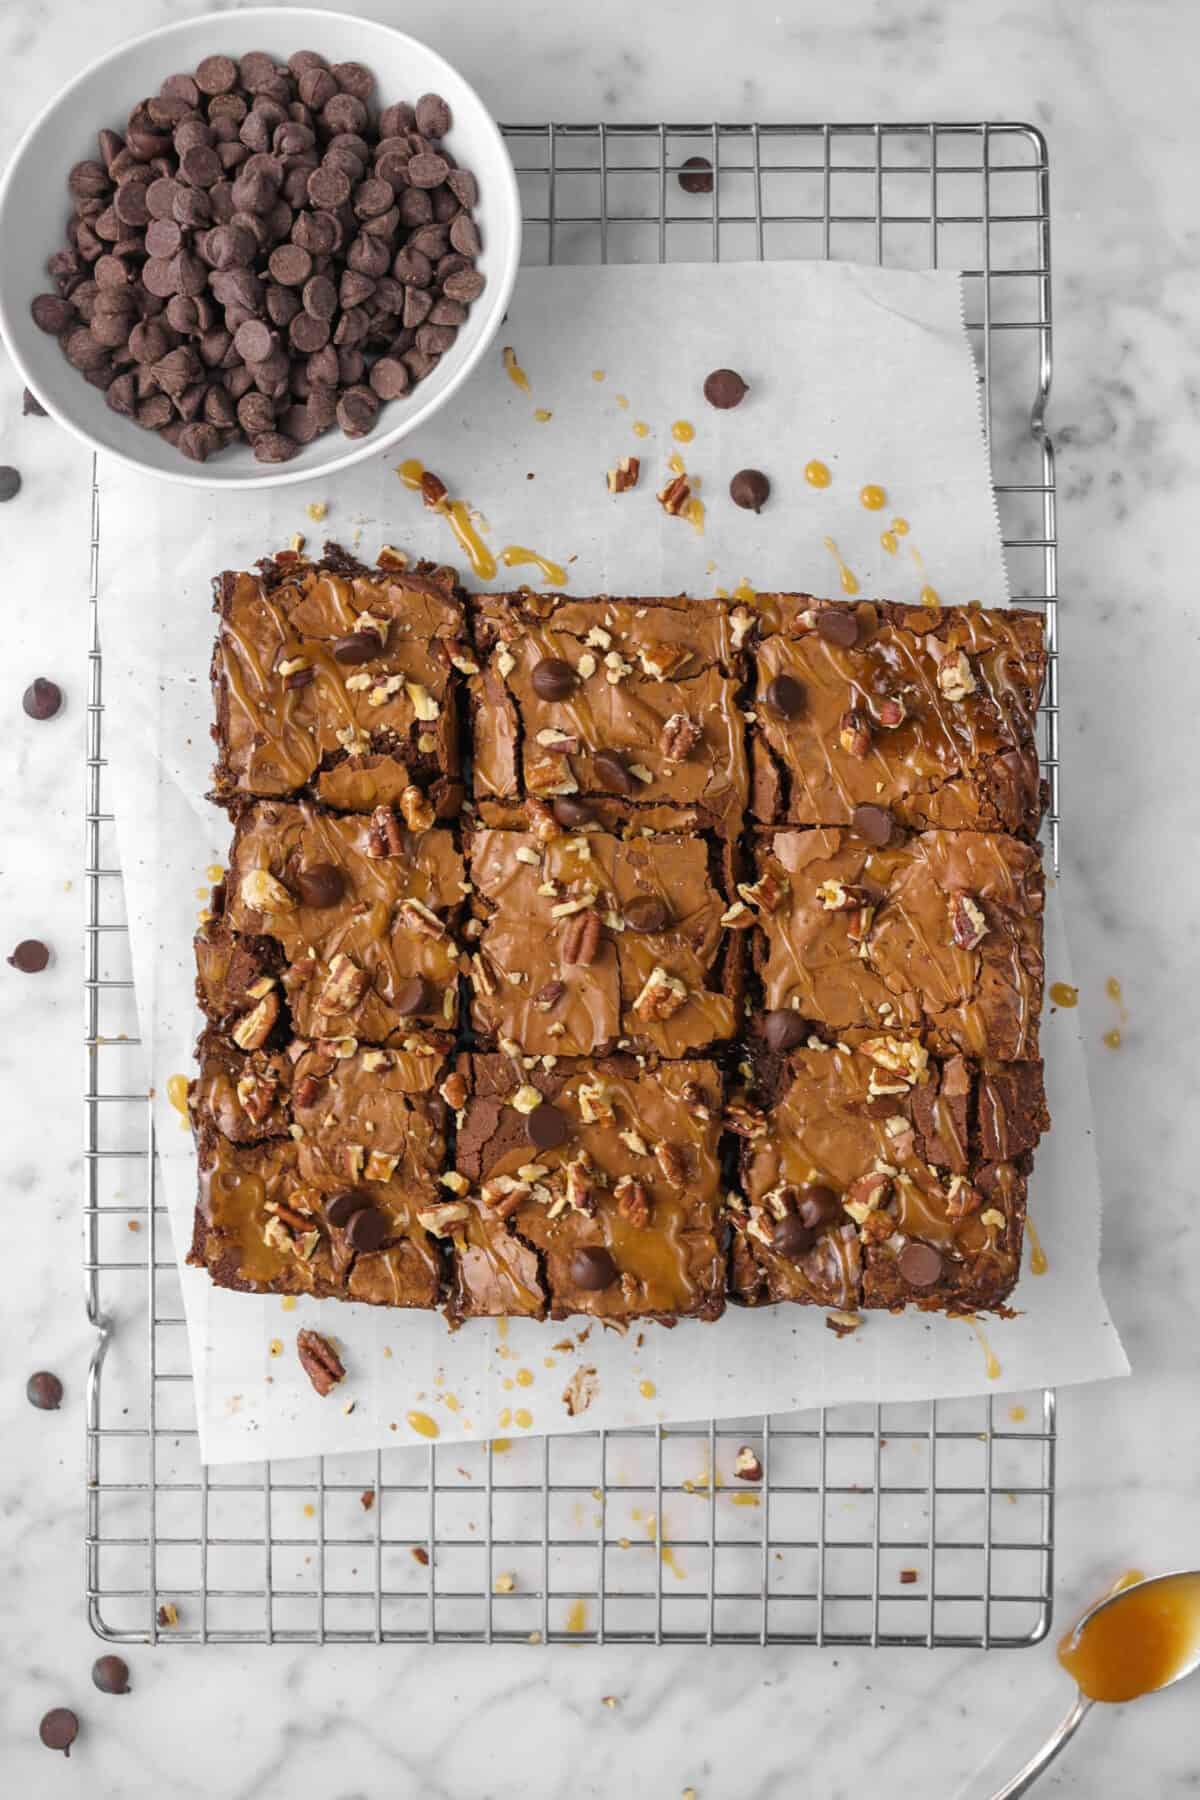 nine brownies cut on a wire rack with chocolate chips, caramel, and pecans